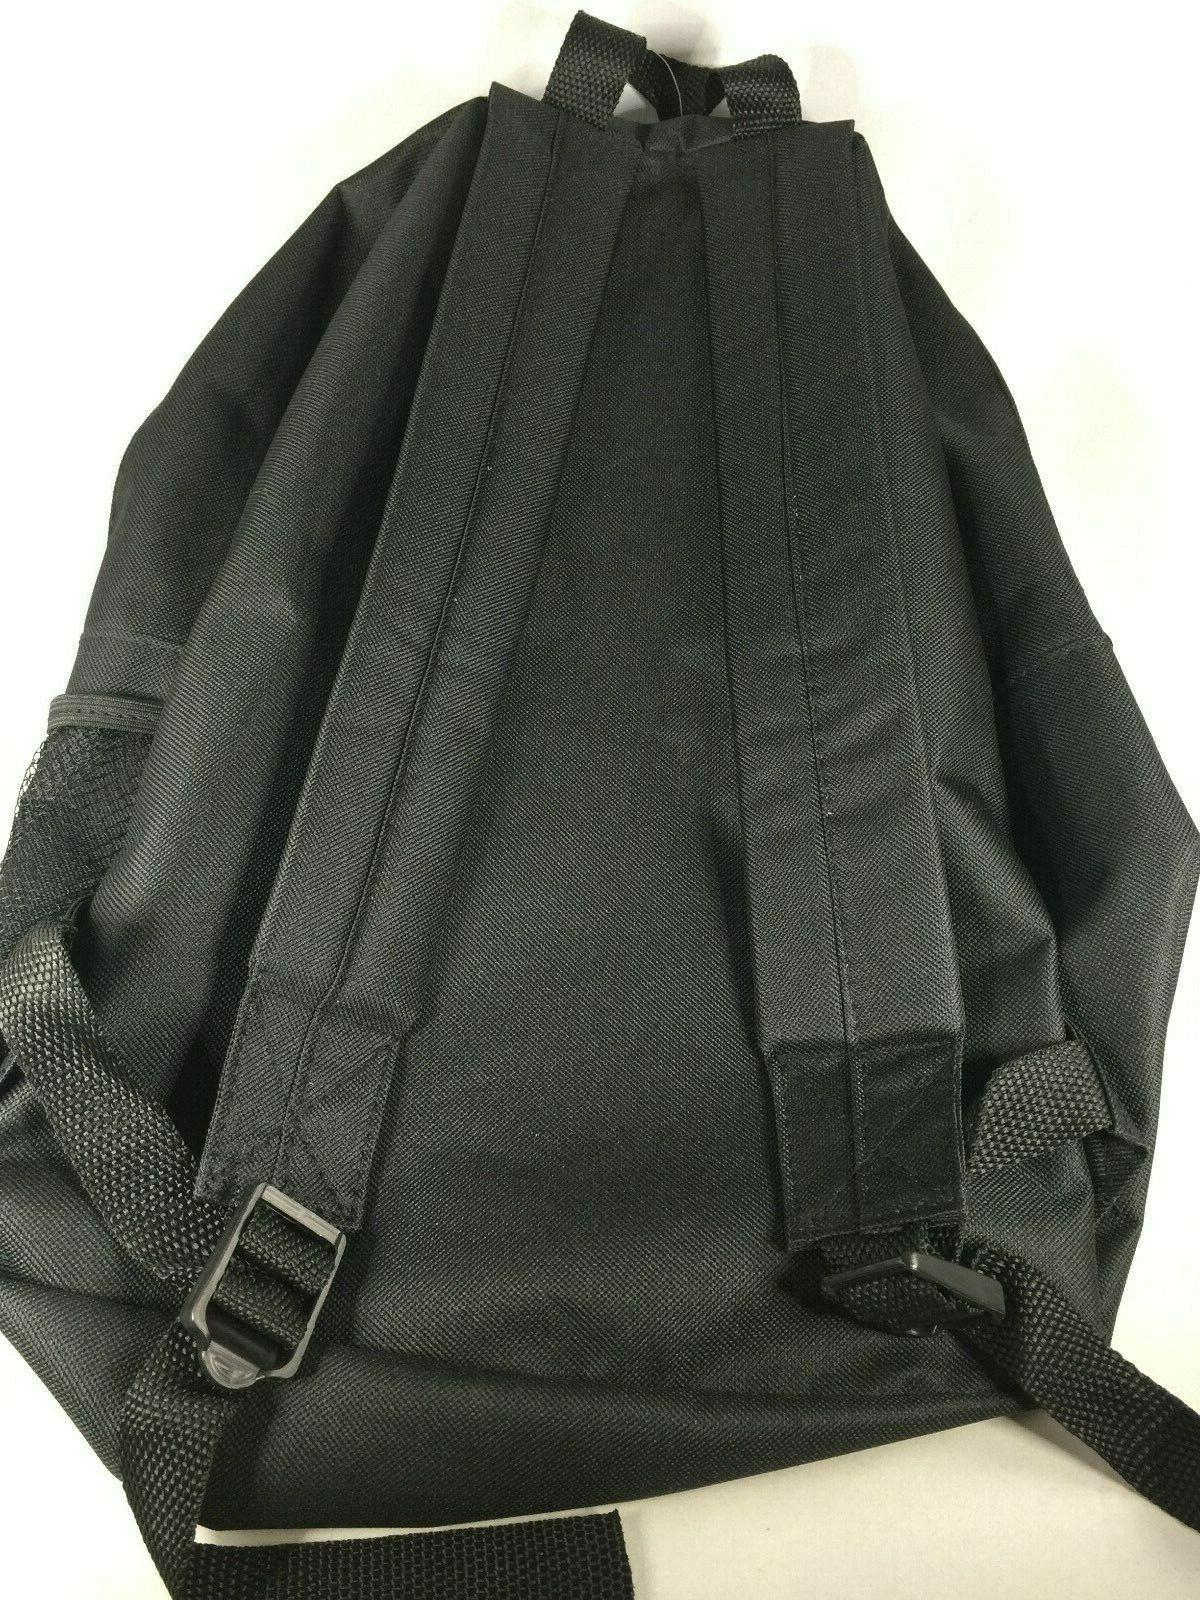 MLB COLLECTIBLES BACKPACK NEW WITH TAGS GENUINE PADDED